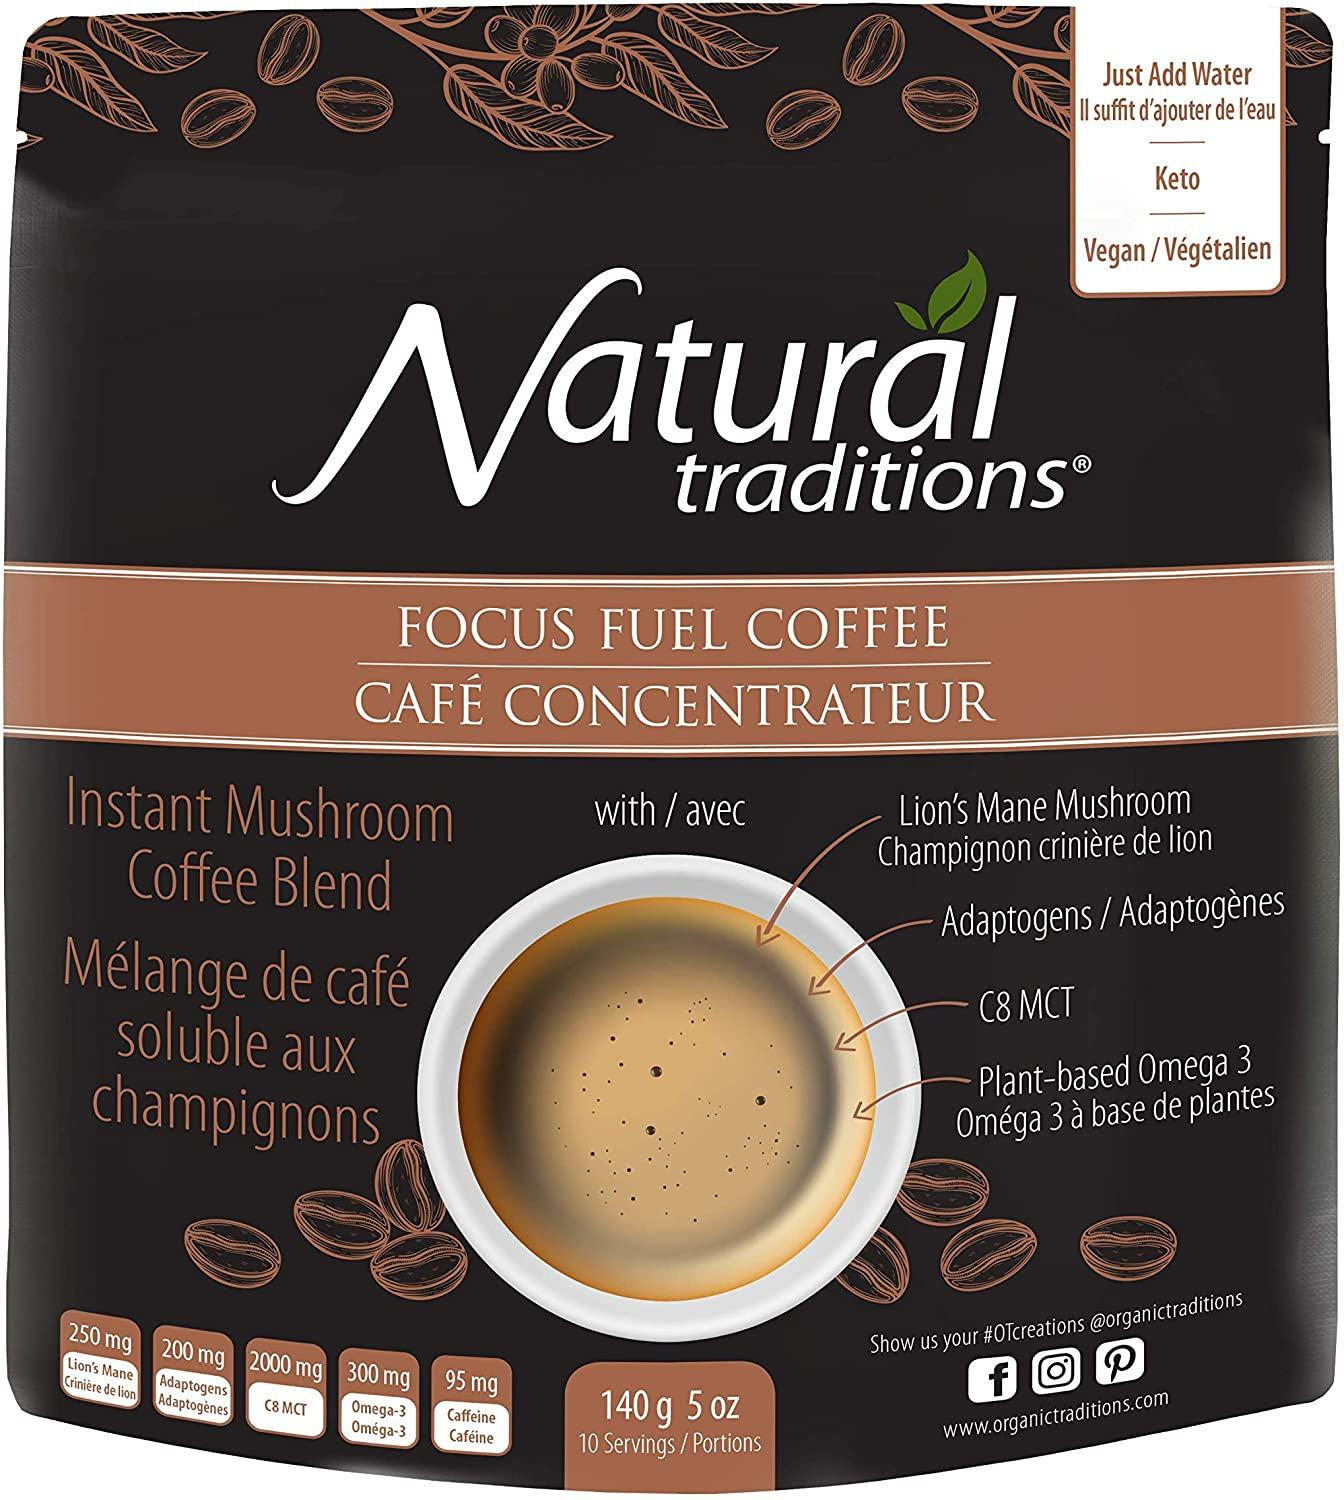 Food & Drink - Natural Traditions - Focus Fuel Coffee, Instant Mushroom Coffee Blend, 140g